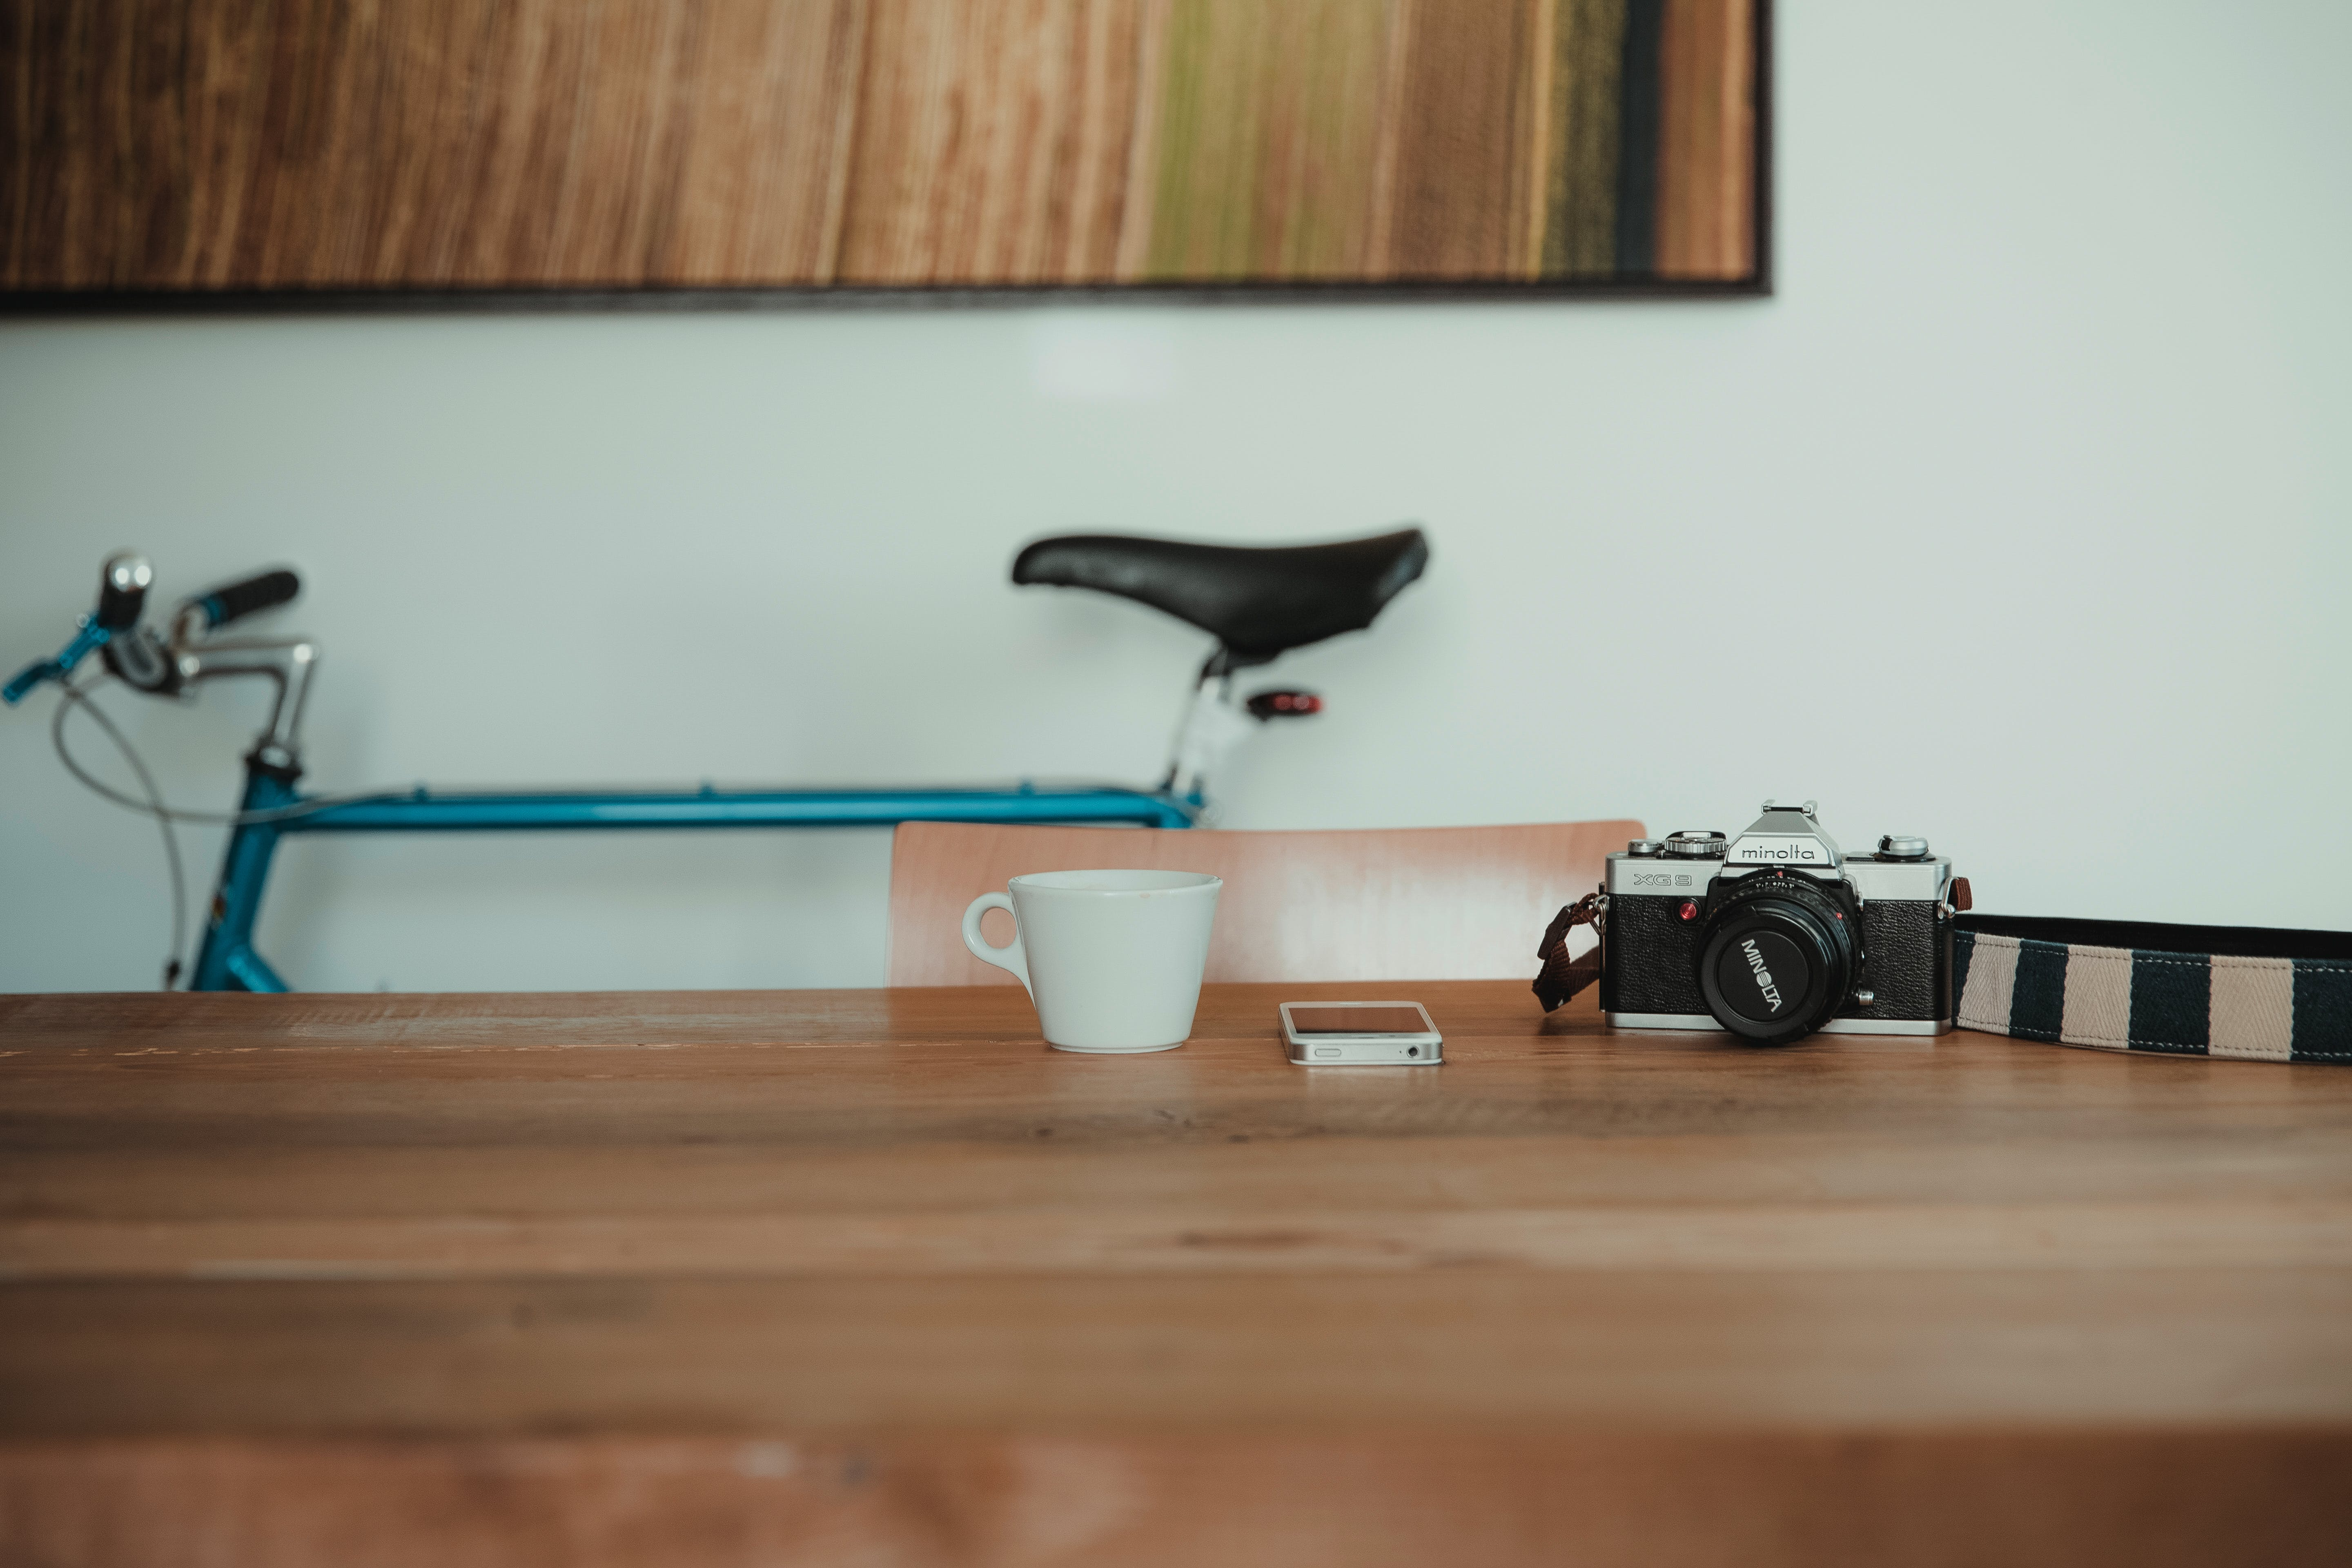 Black Camera Beside White Smartphone and Teacup on Brown Wooden Table